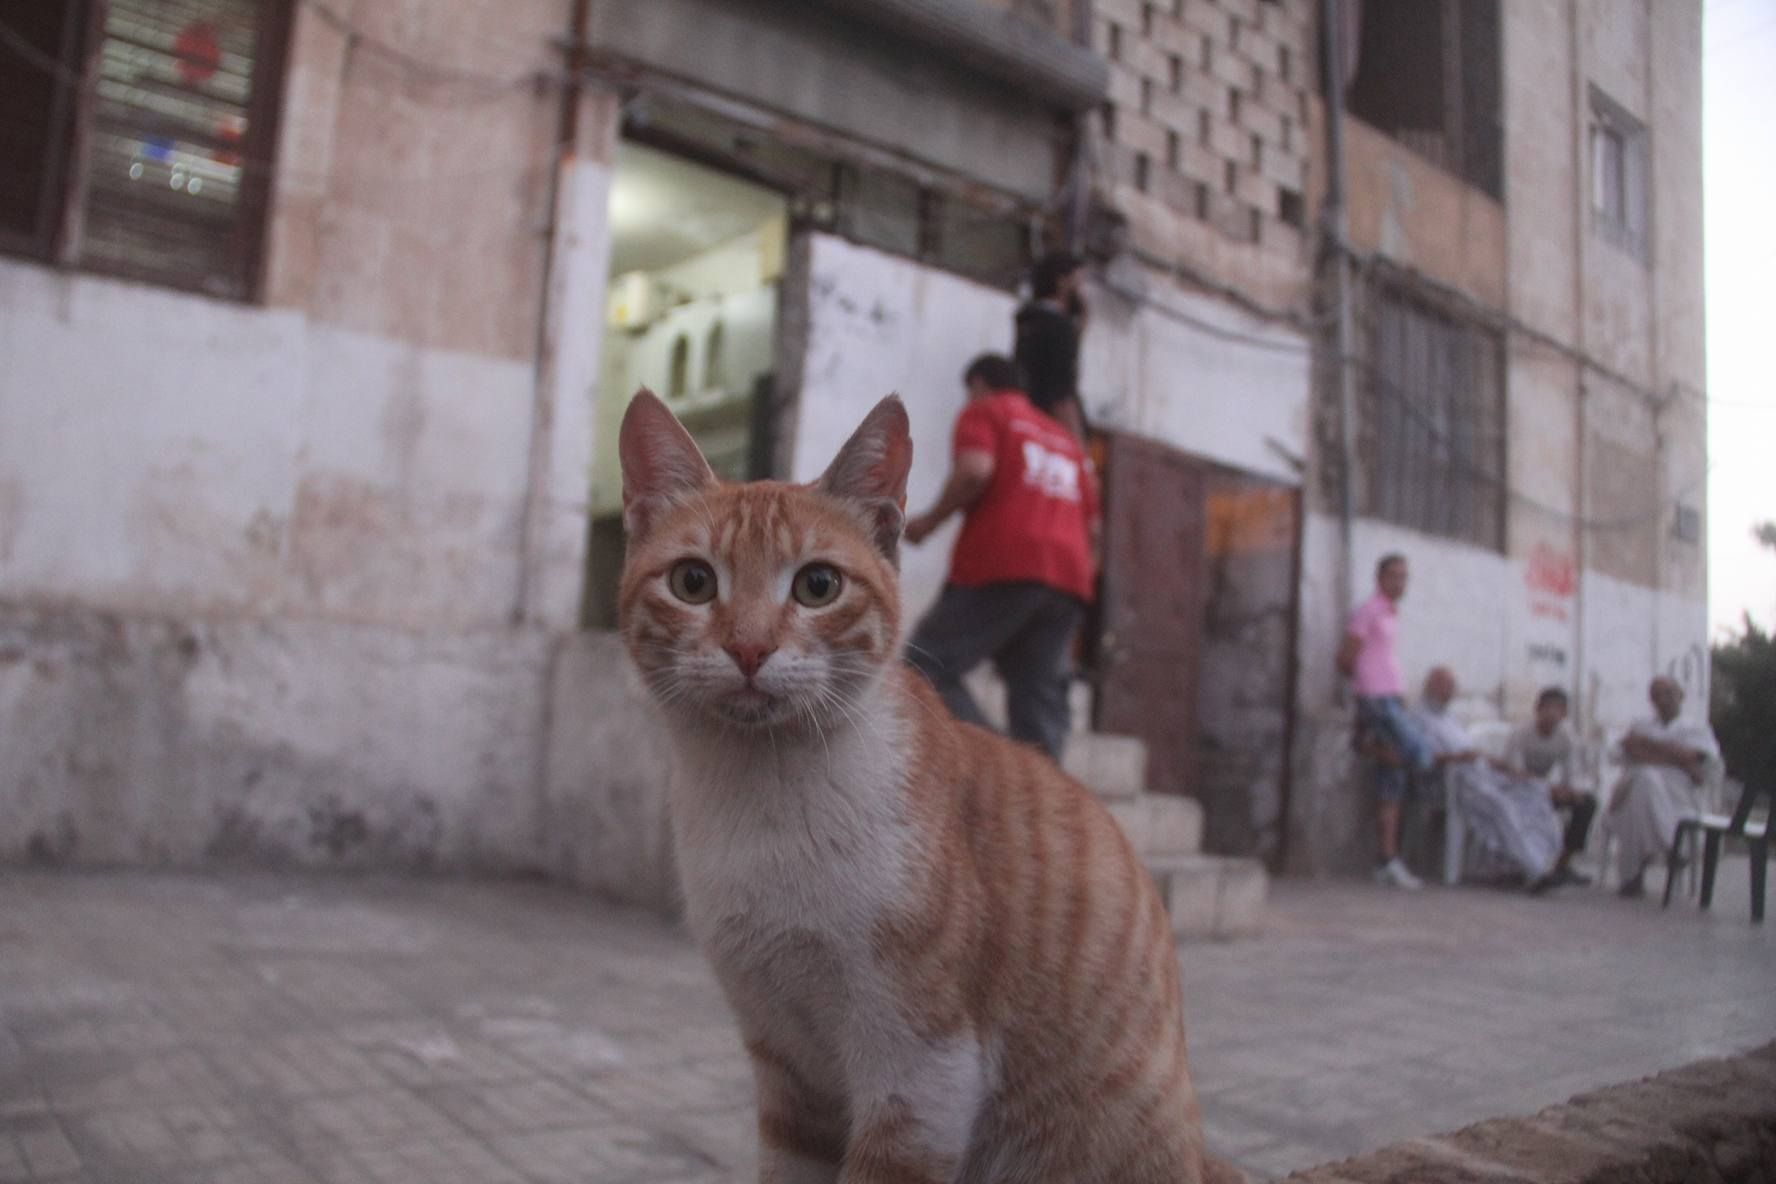 Hey Where S My Lunch At The House Of Cats Aleppo Syria لك وين الغدا جعت في بيت القطط حلب سوريا Animals Cat House Aleppo Syria